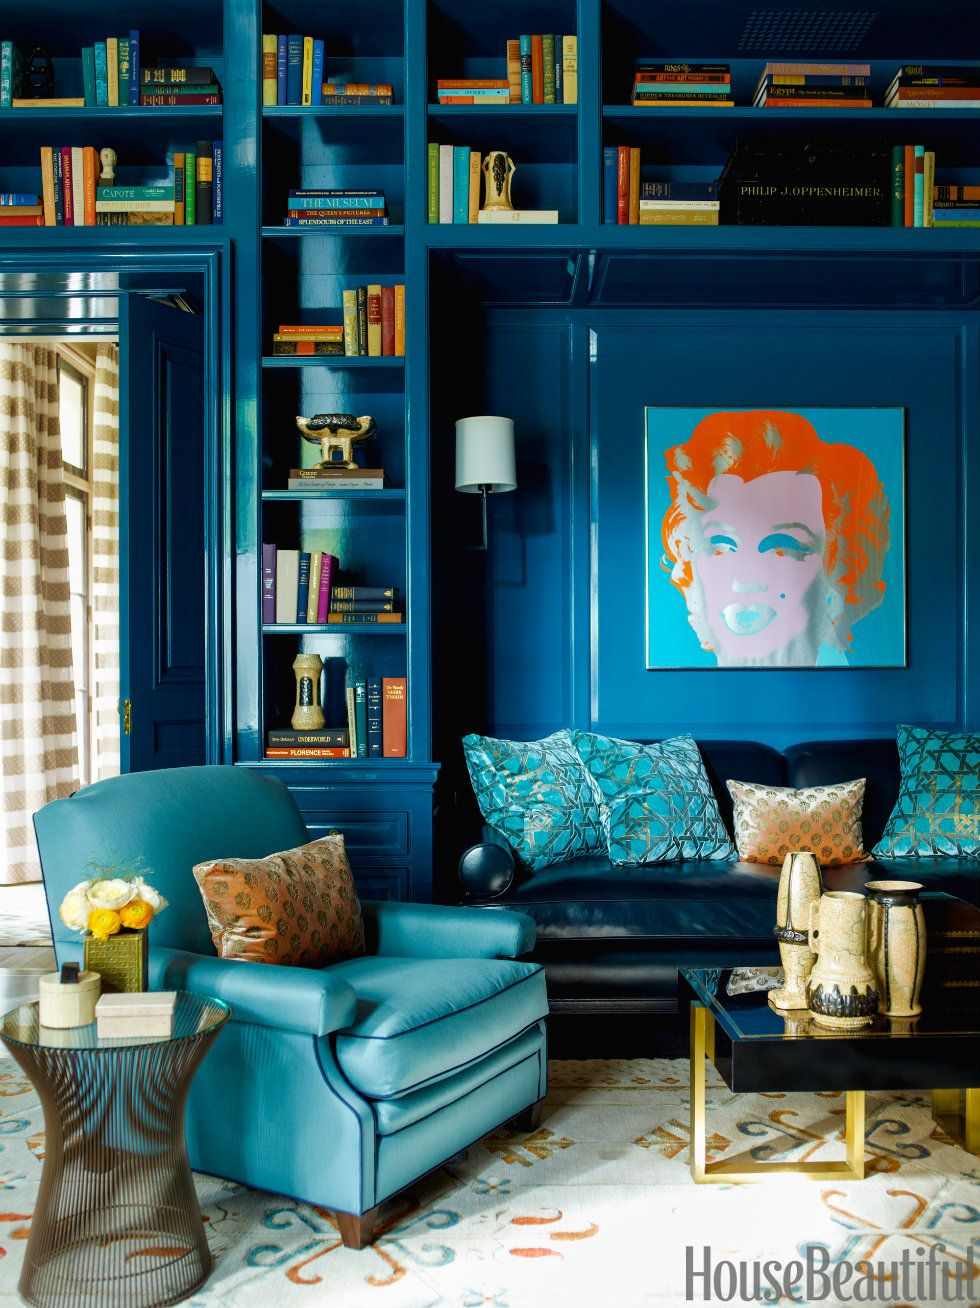 Andy Warhol Pop Art Interiors